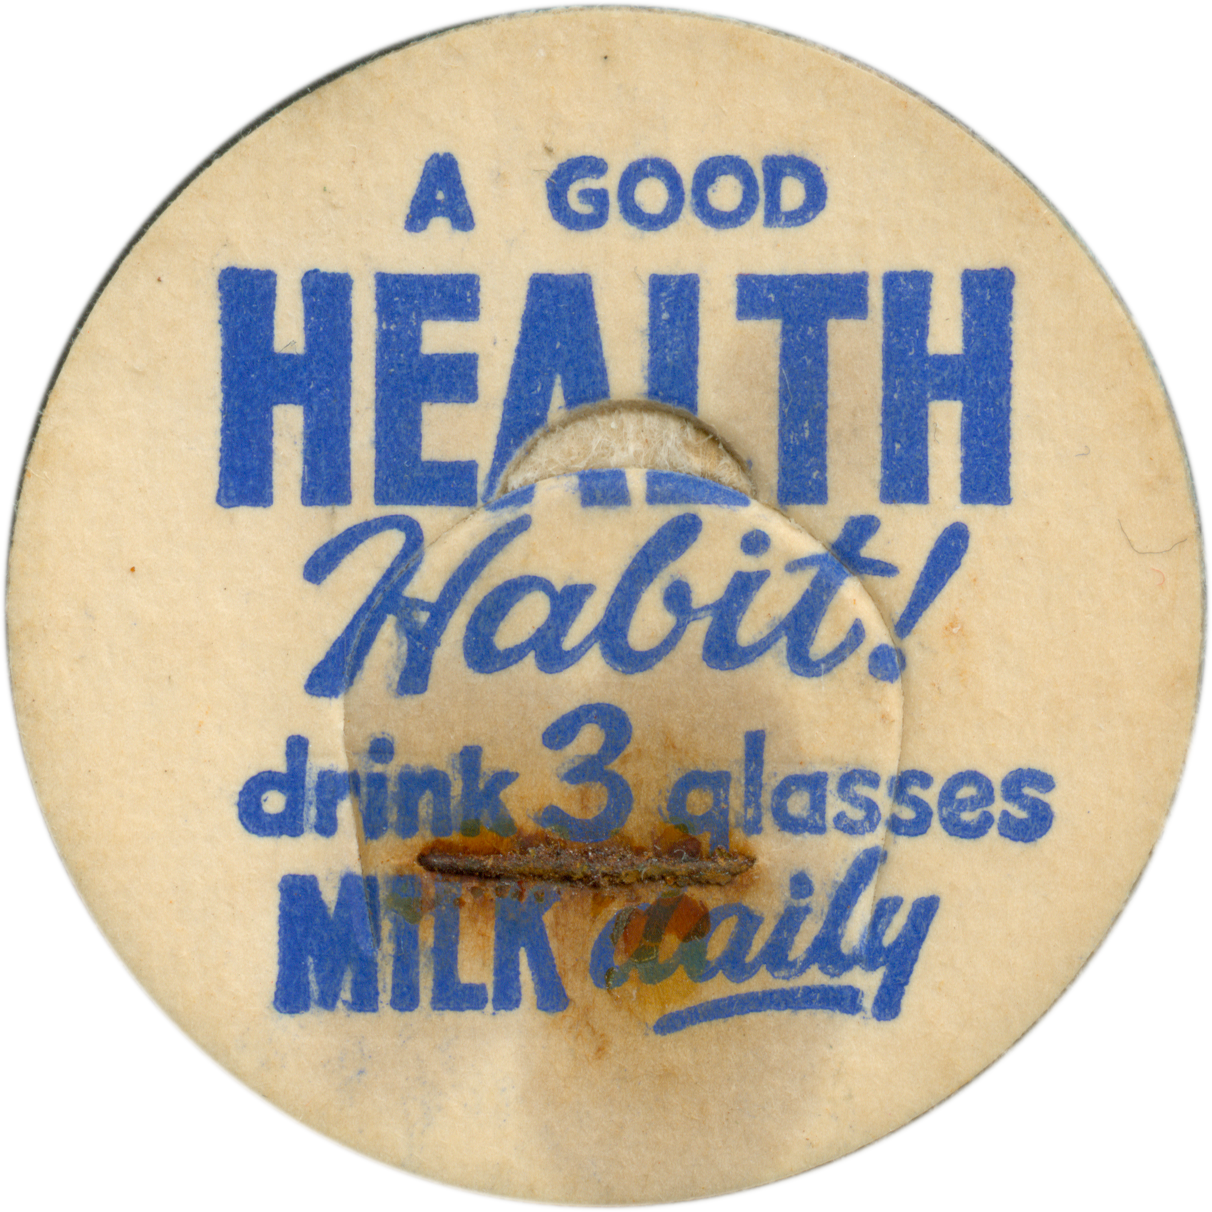 VernacularCircle__0000s_0028_A-Good-Health-Habit---Drink-3-Glasses-Milk-Daily.png